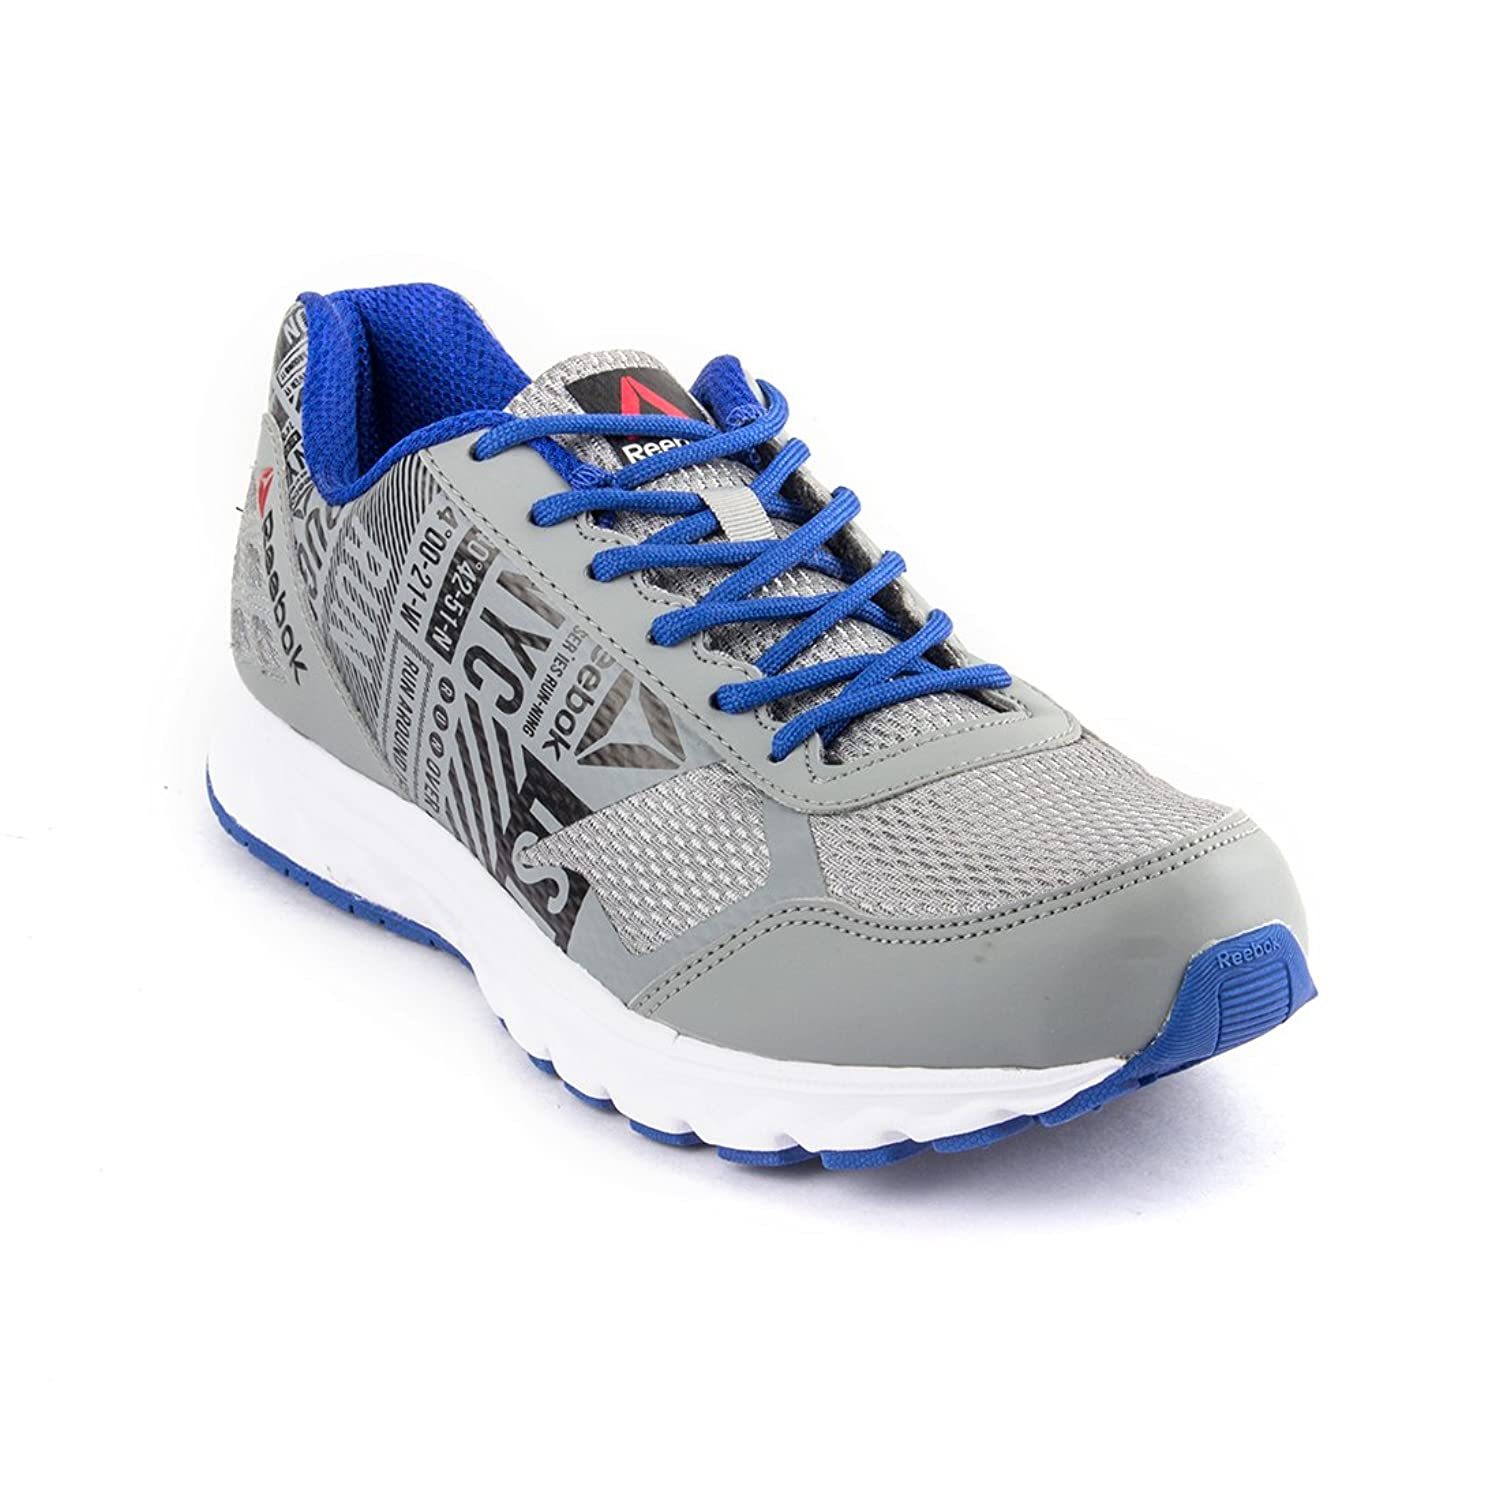 Reebok Run Voyager Sports Running Shoes: Buy Online at Low Prices in India  - Amazon.in